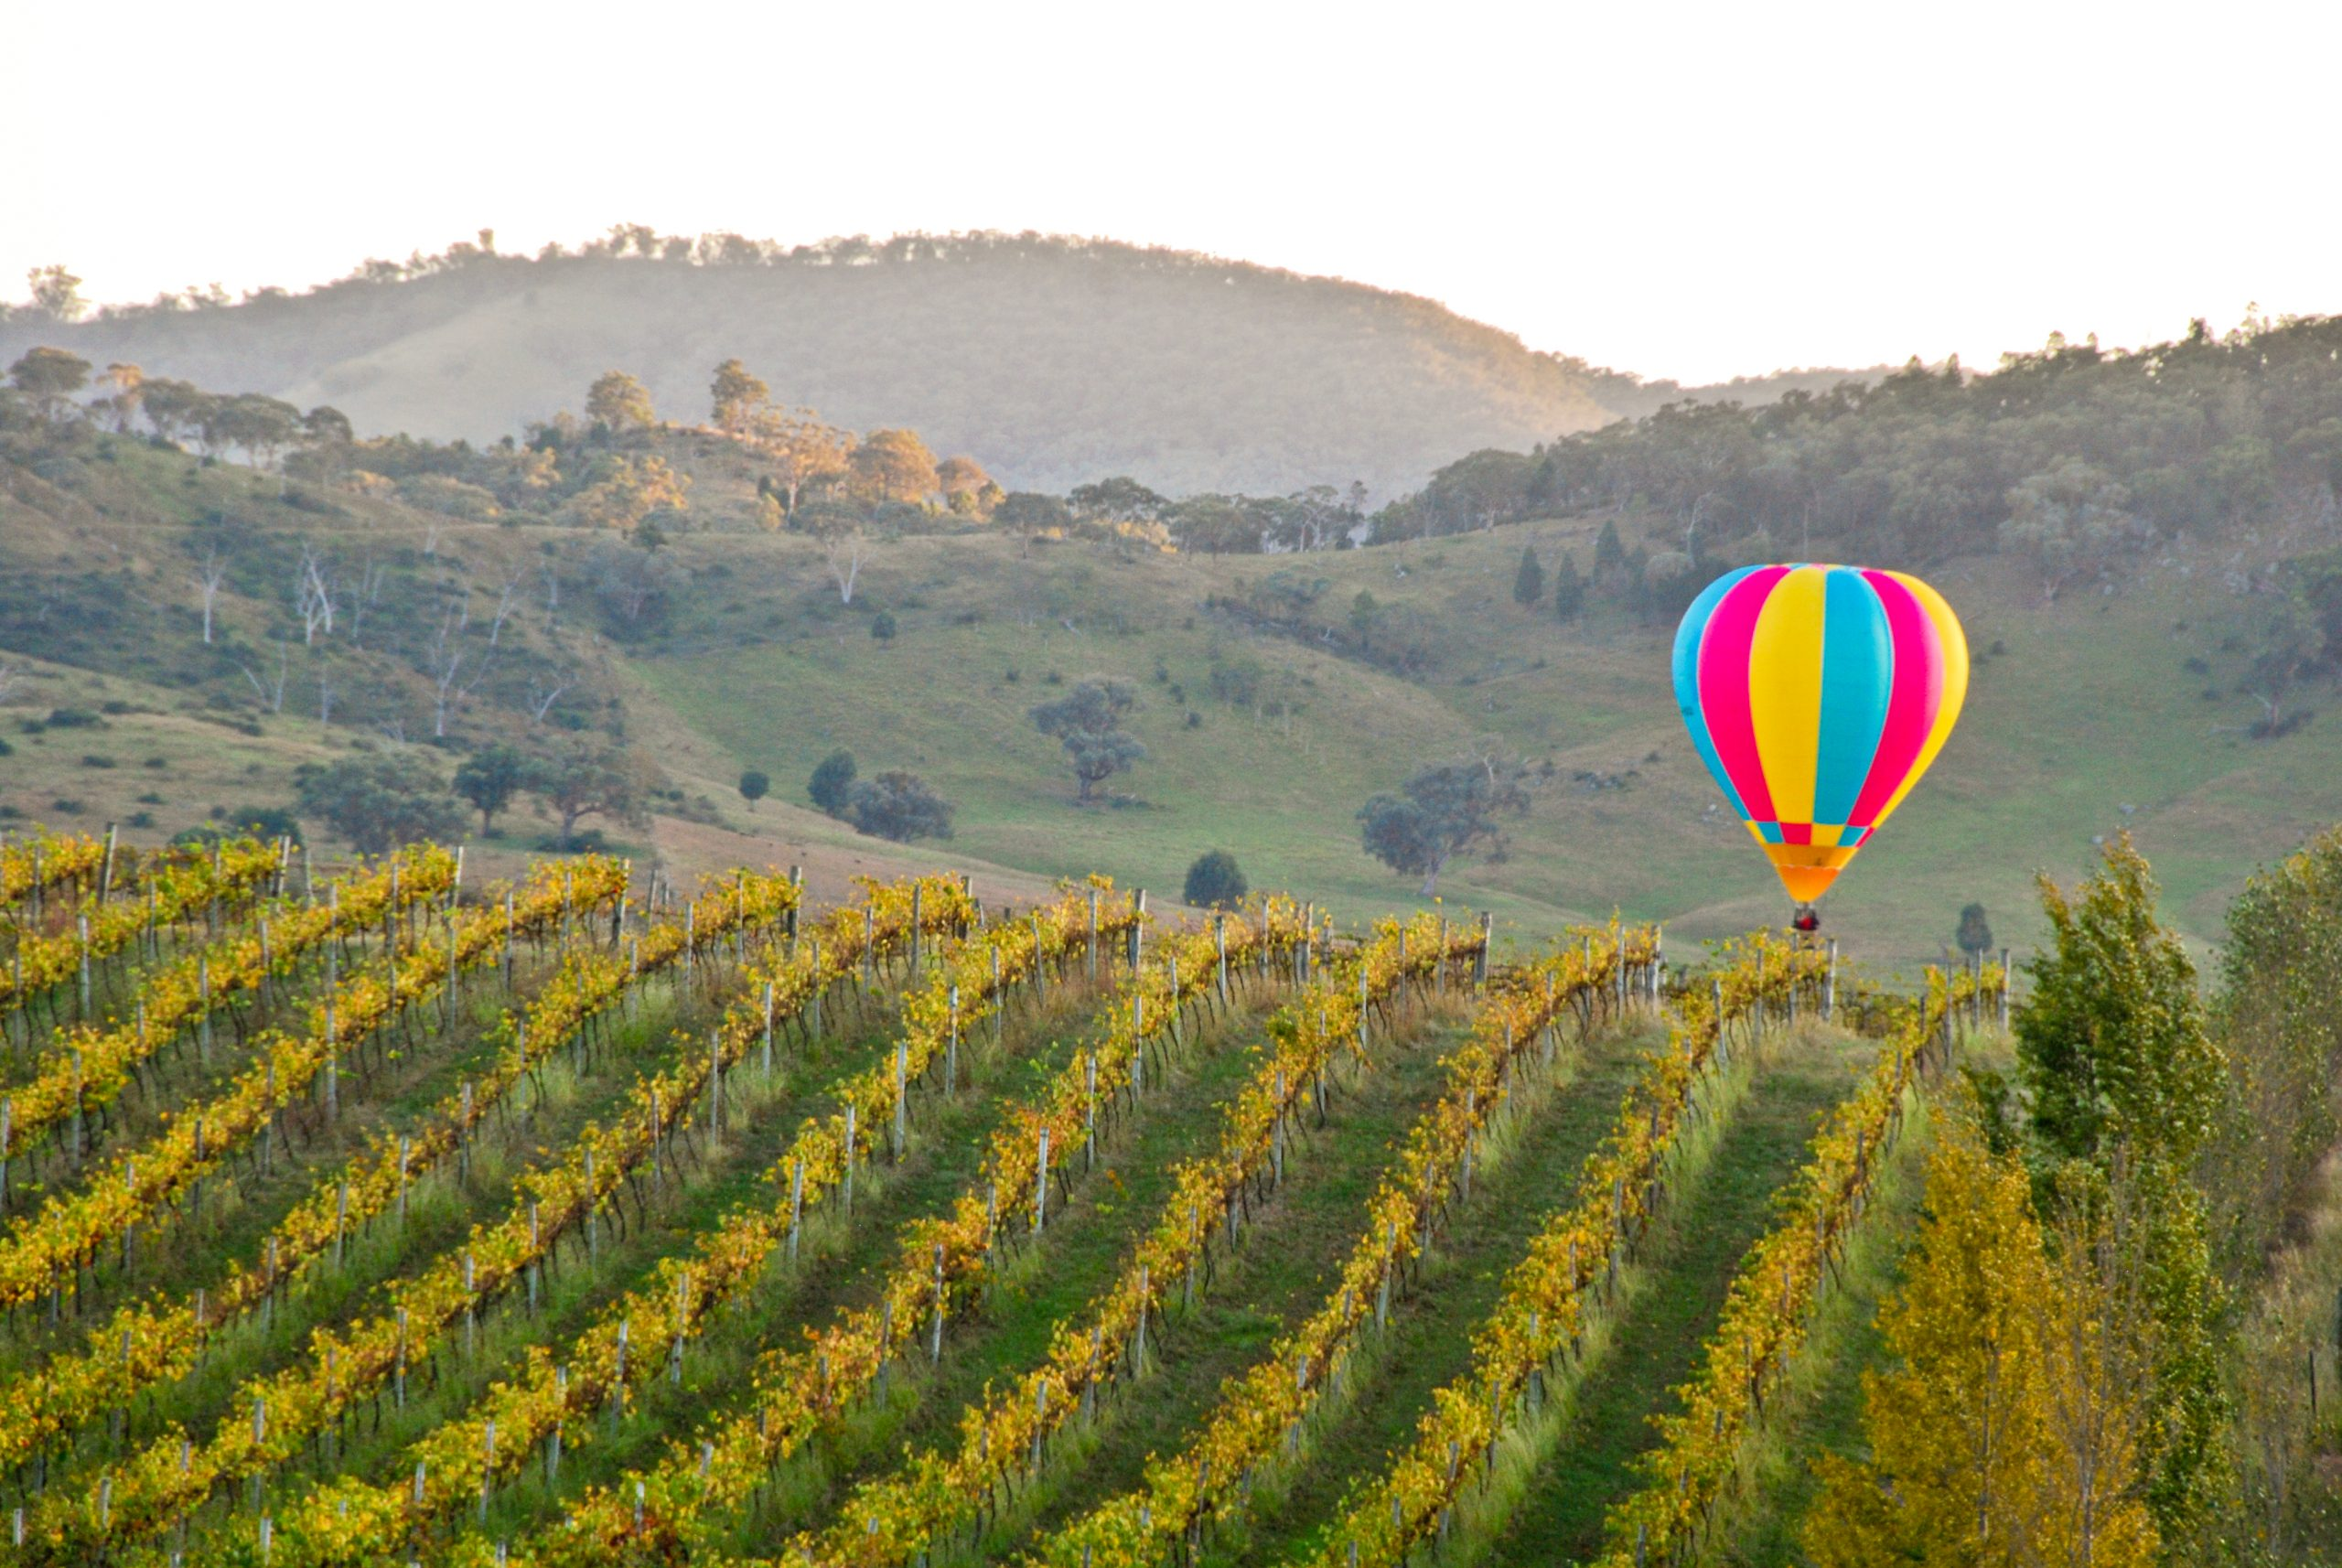 Balloon Aloft - Mudgee Region